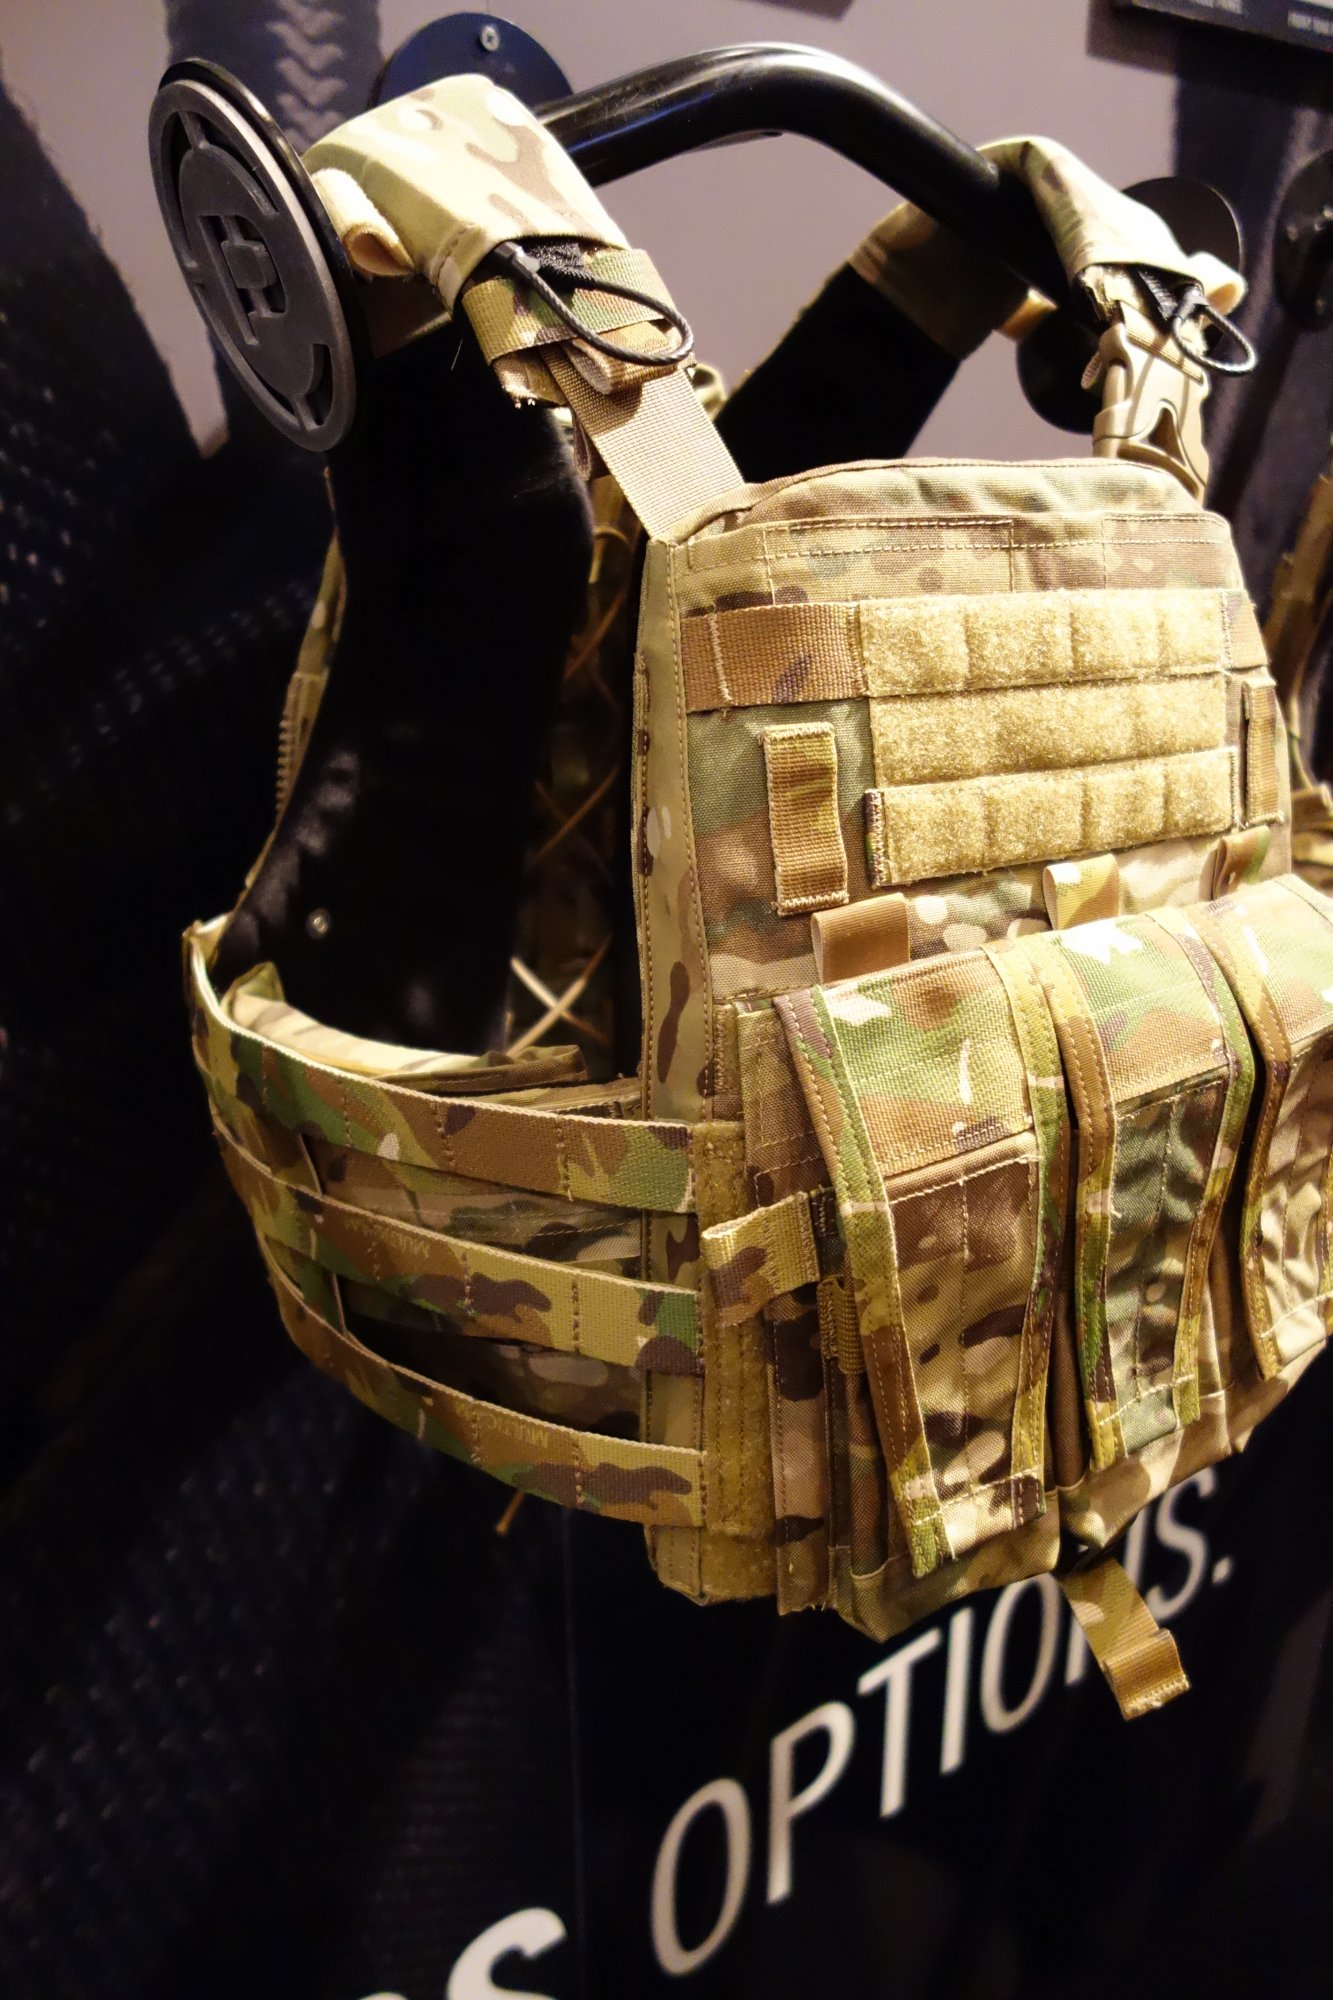 Crye Precision Adaptive Vest System AVS Assault Configuration Mission Configurable Modular Tactical Armor Plate Carrier SHOT Show 2013 David Crane DefenseReview.com DR 3 Crye Precision AVS AC (Adaptive Vest System Assault Configuration) Modular Tactical Armor Plate Carrier goes from Lo Pro/Lo Vis to Full Load Bearing Tactical Vest (Body Armor)